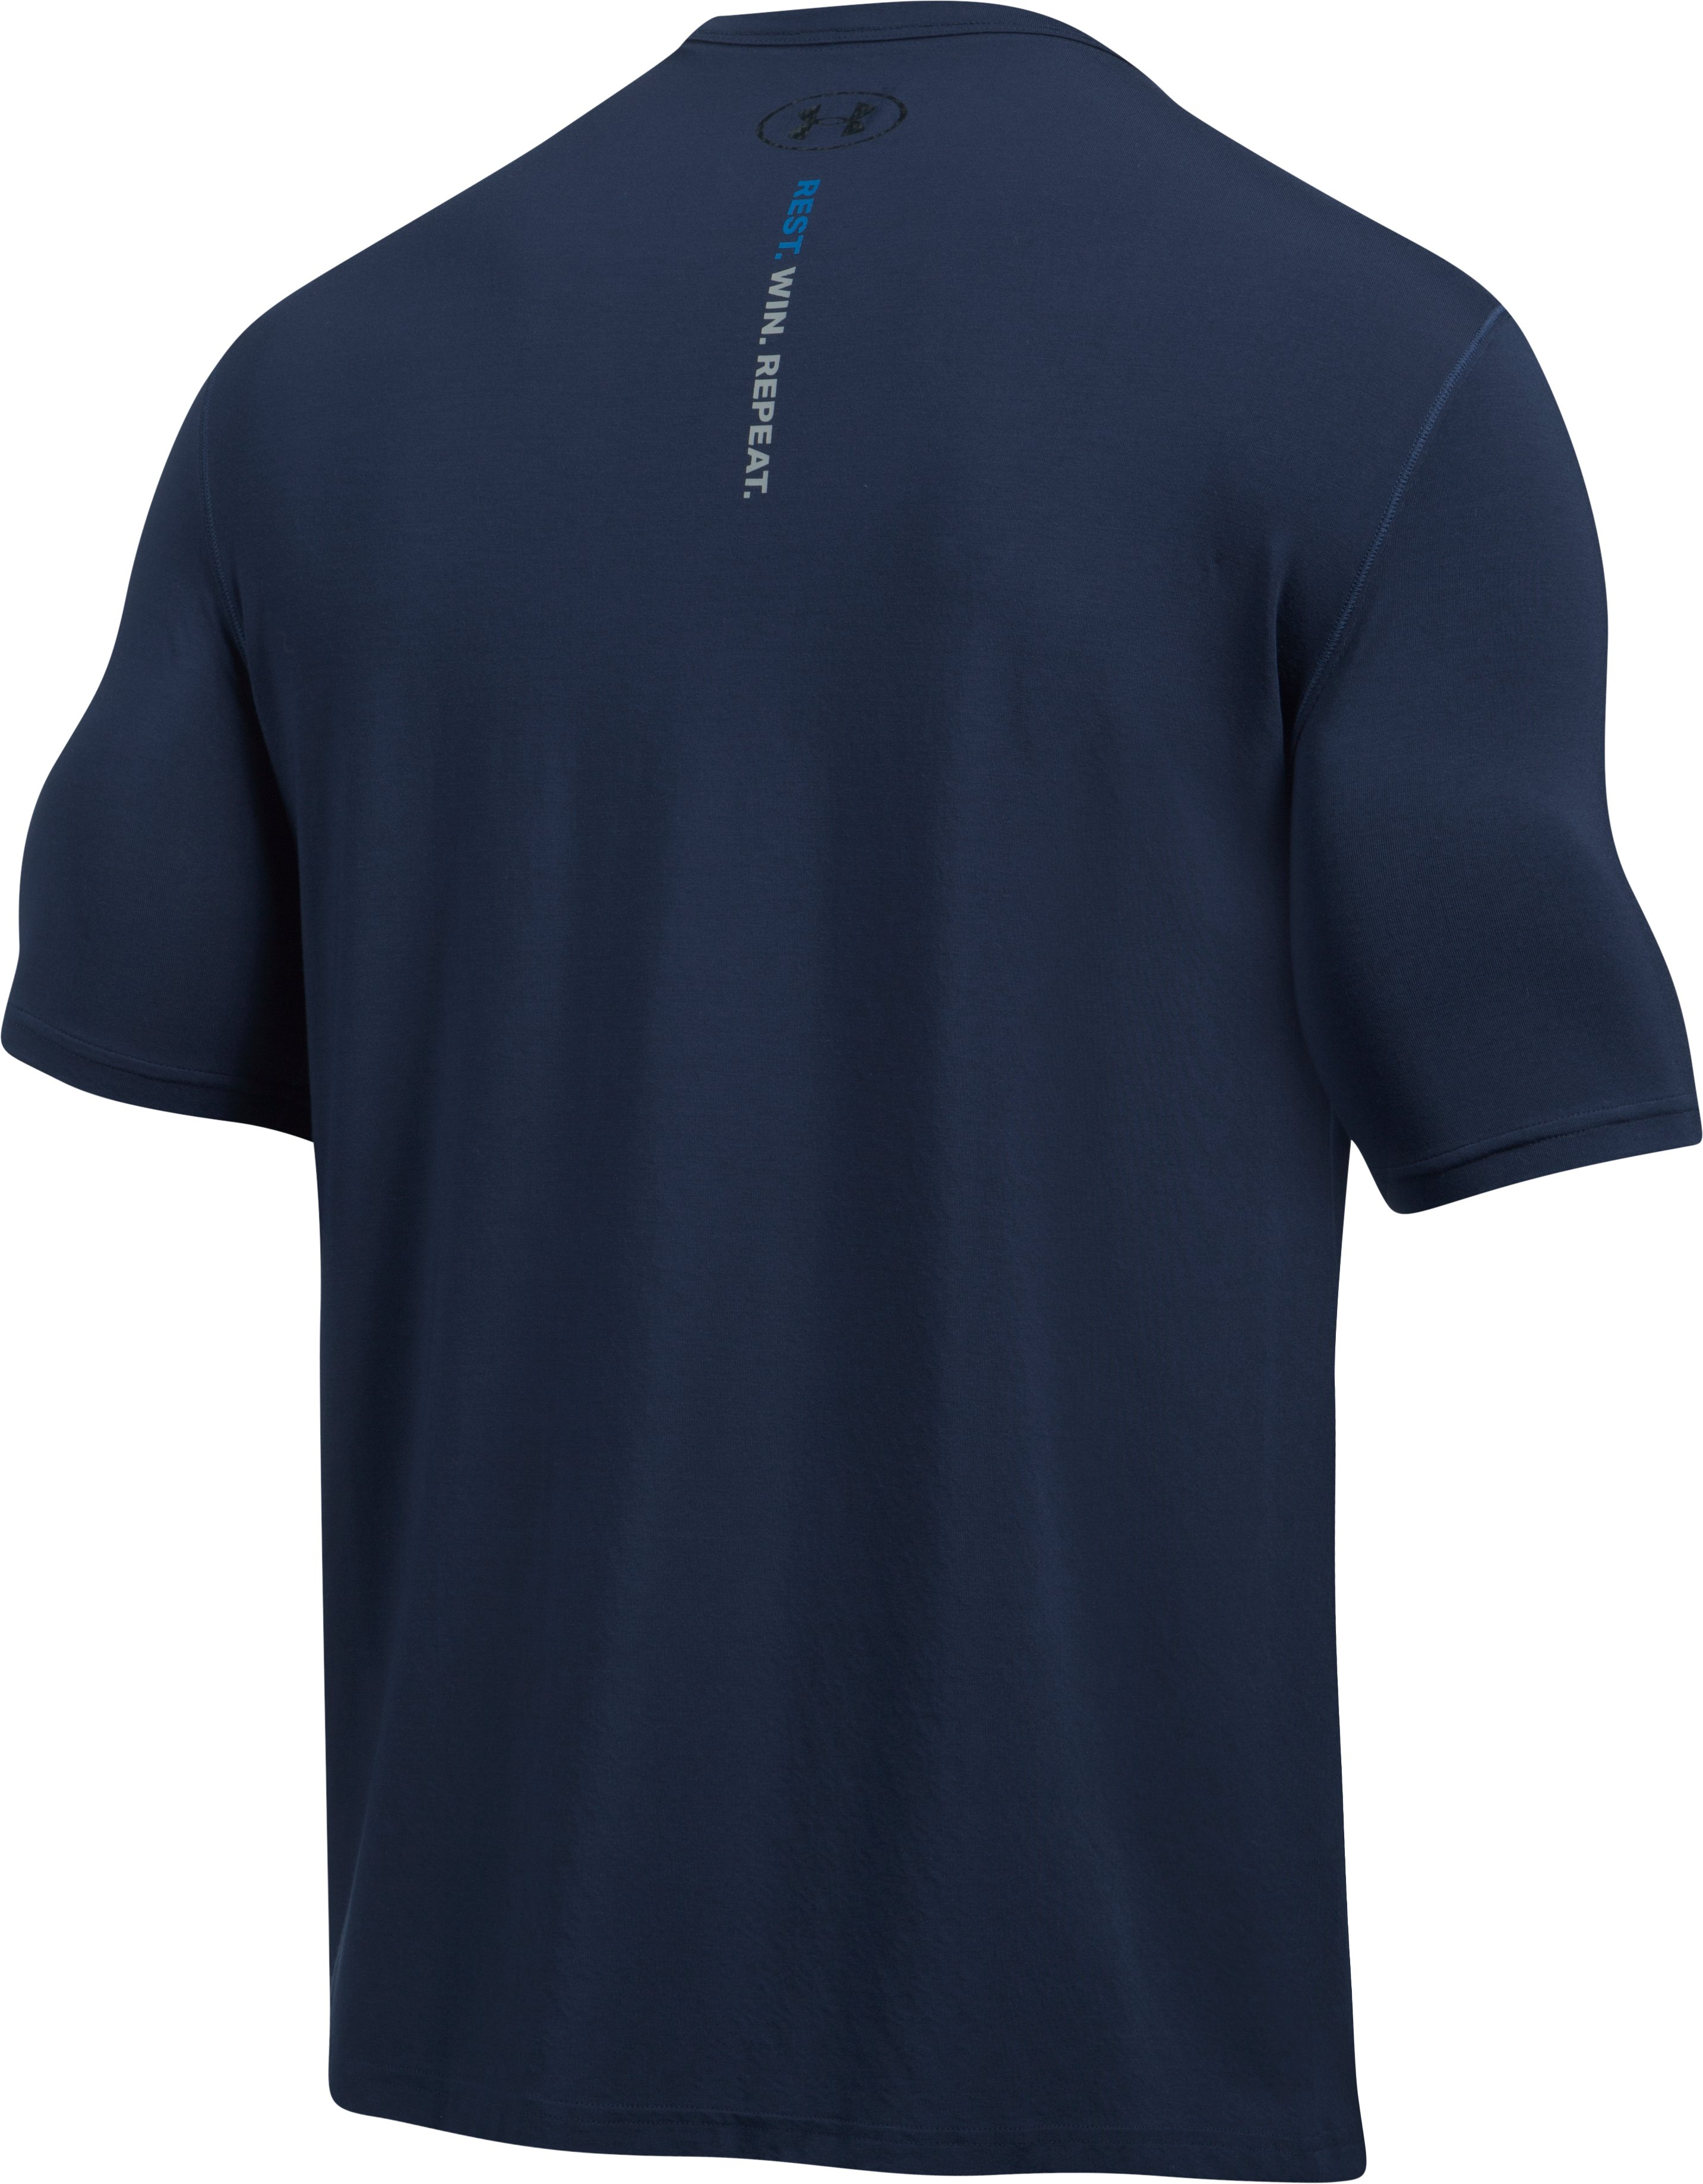 Men's Athlete Recovery Elite Sleepwear Short Sleeve, Midnight Navy, undefined